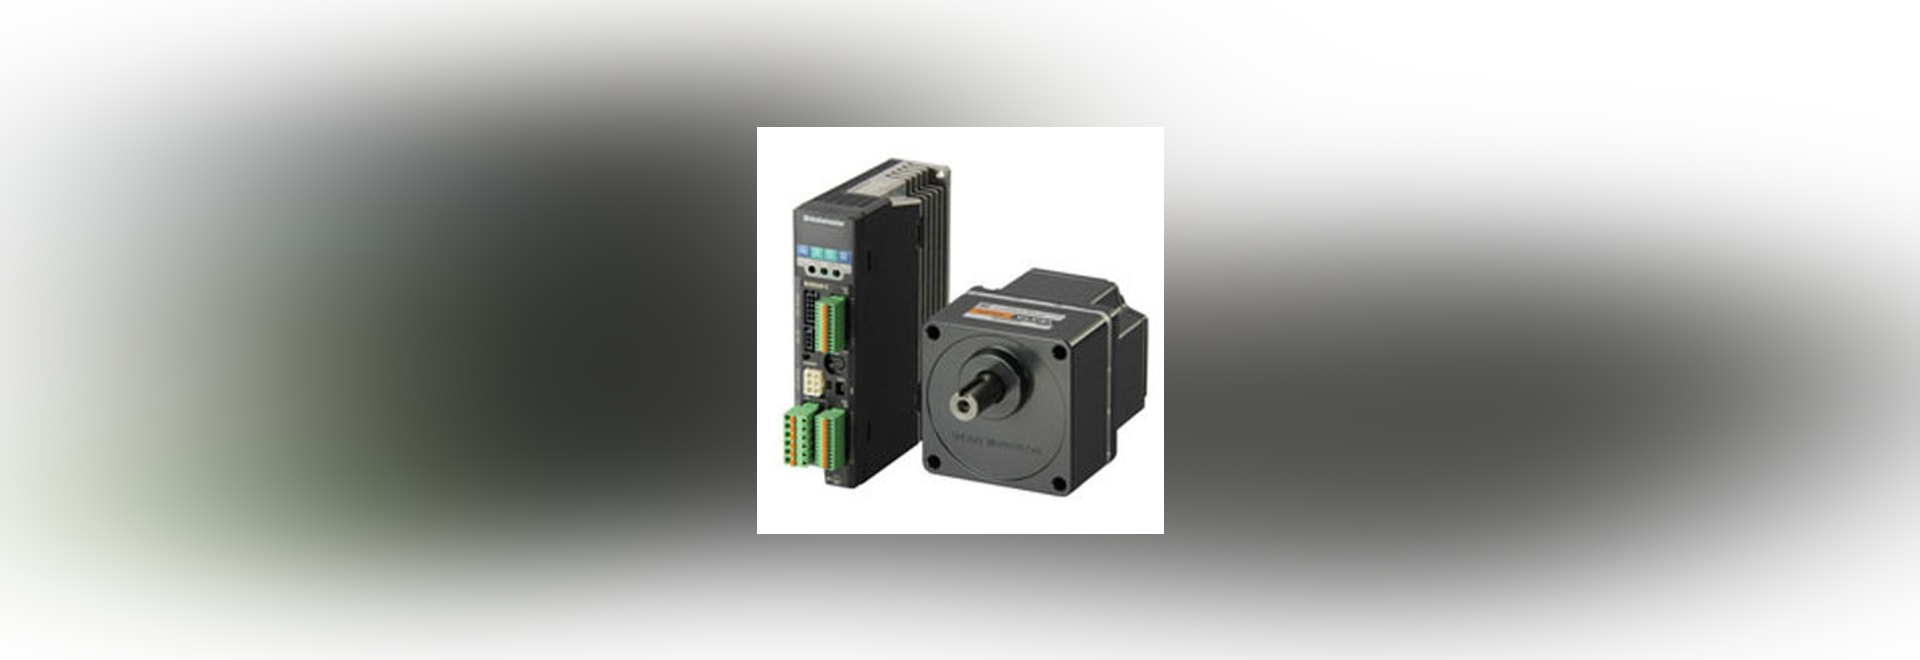 New Brushless Dc Motor Speed Controller By Oriental